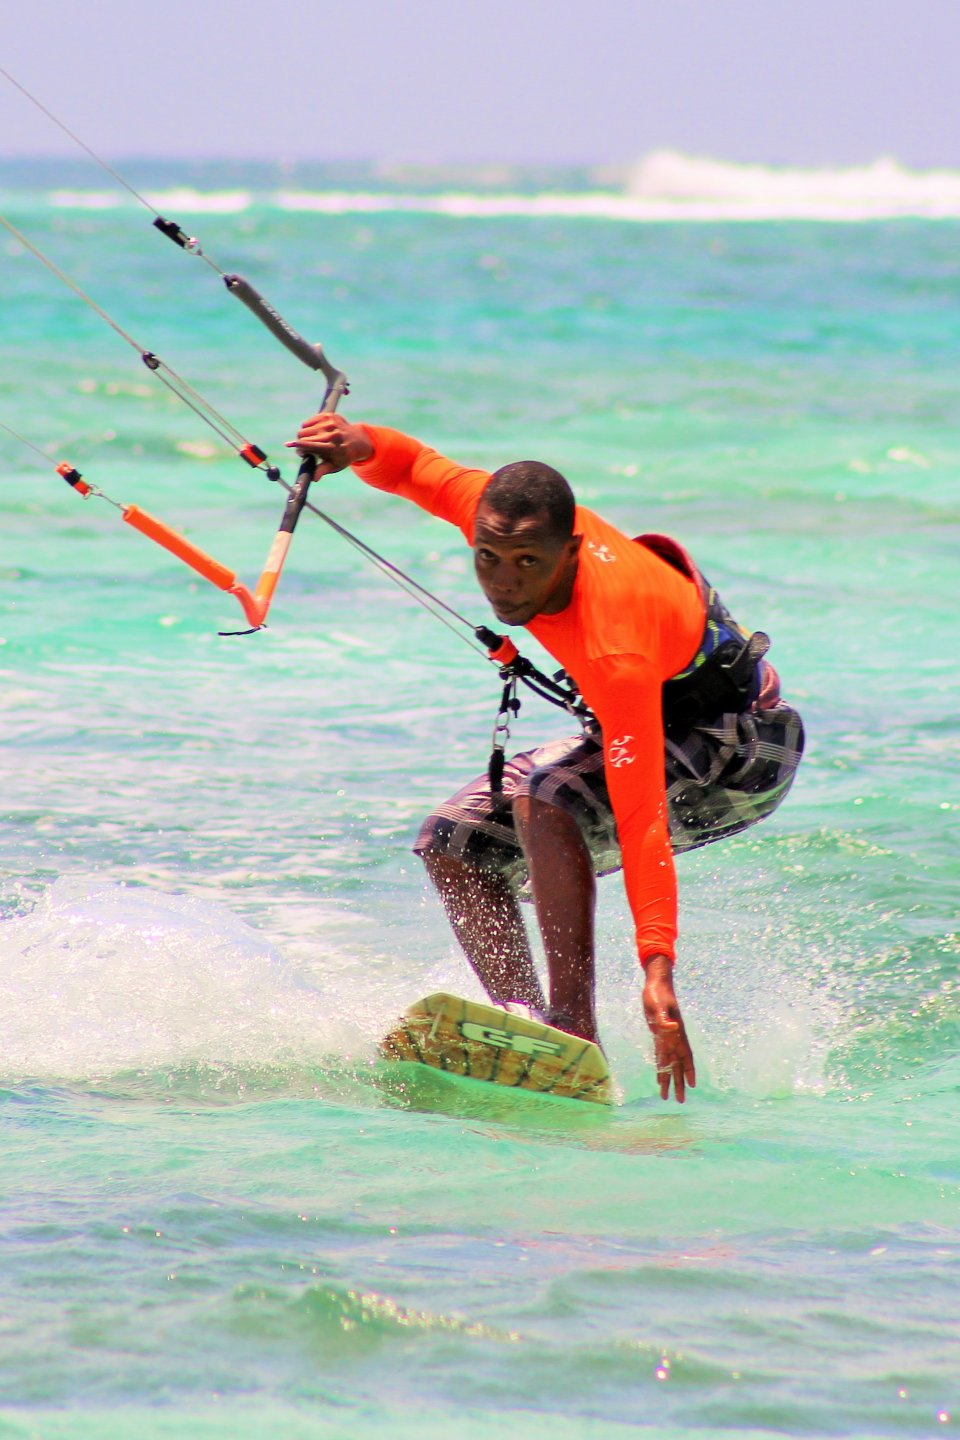 Kite Surfing with Sand and Sea Water Sports